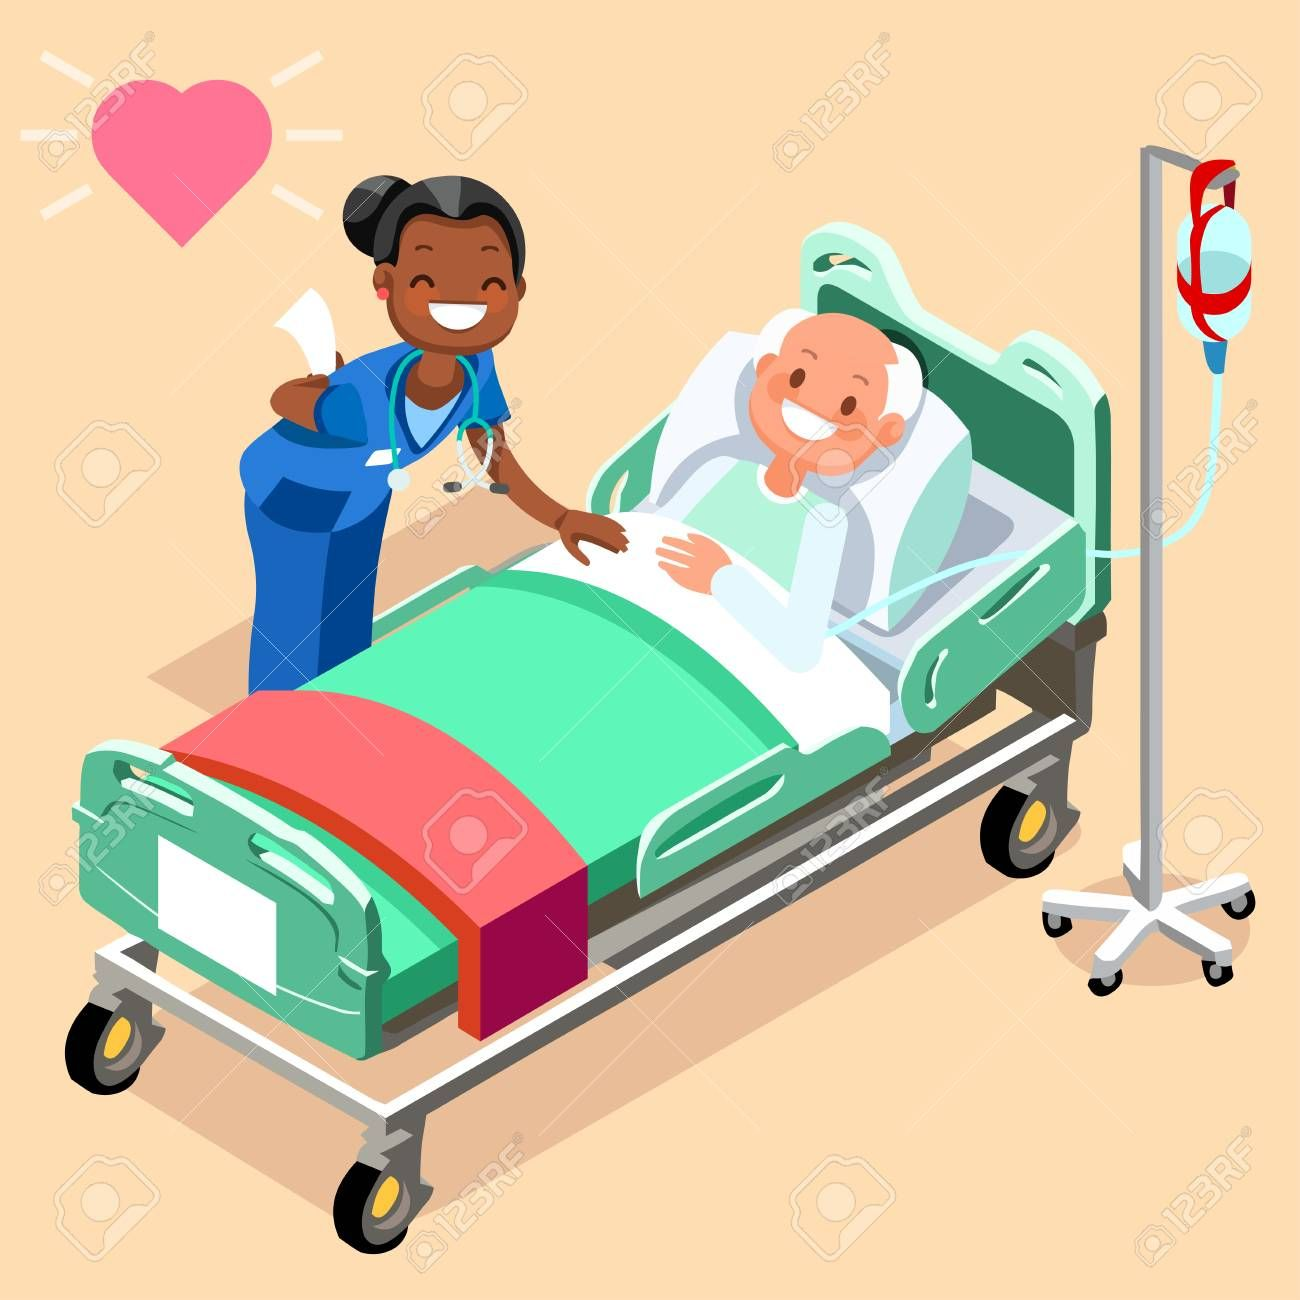 Black Nurse Or Family Doctor At Male Patient Bed 3d Flat People Cartoon Styles Nurse Cartoon Medical Icon